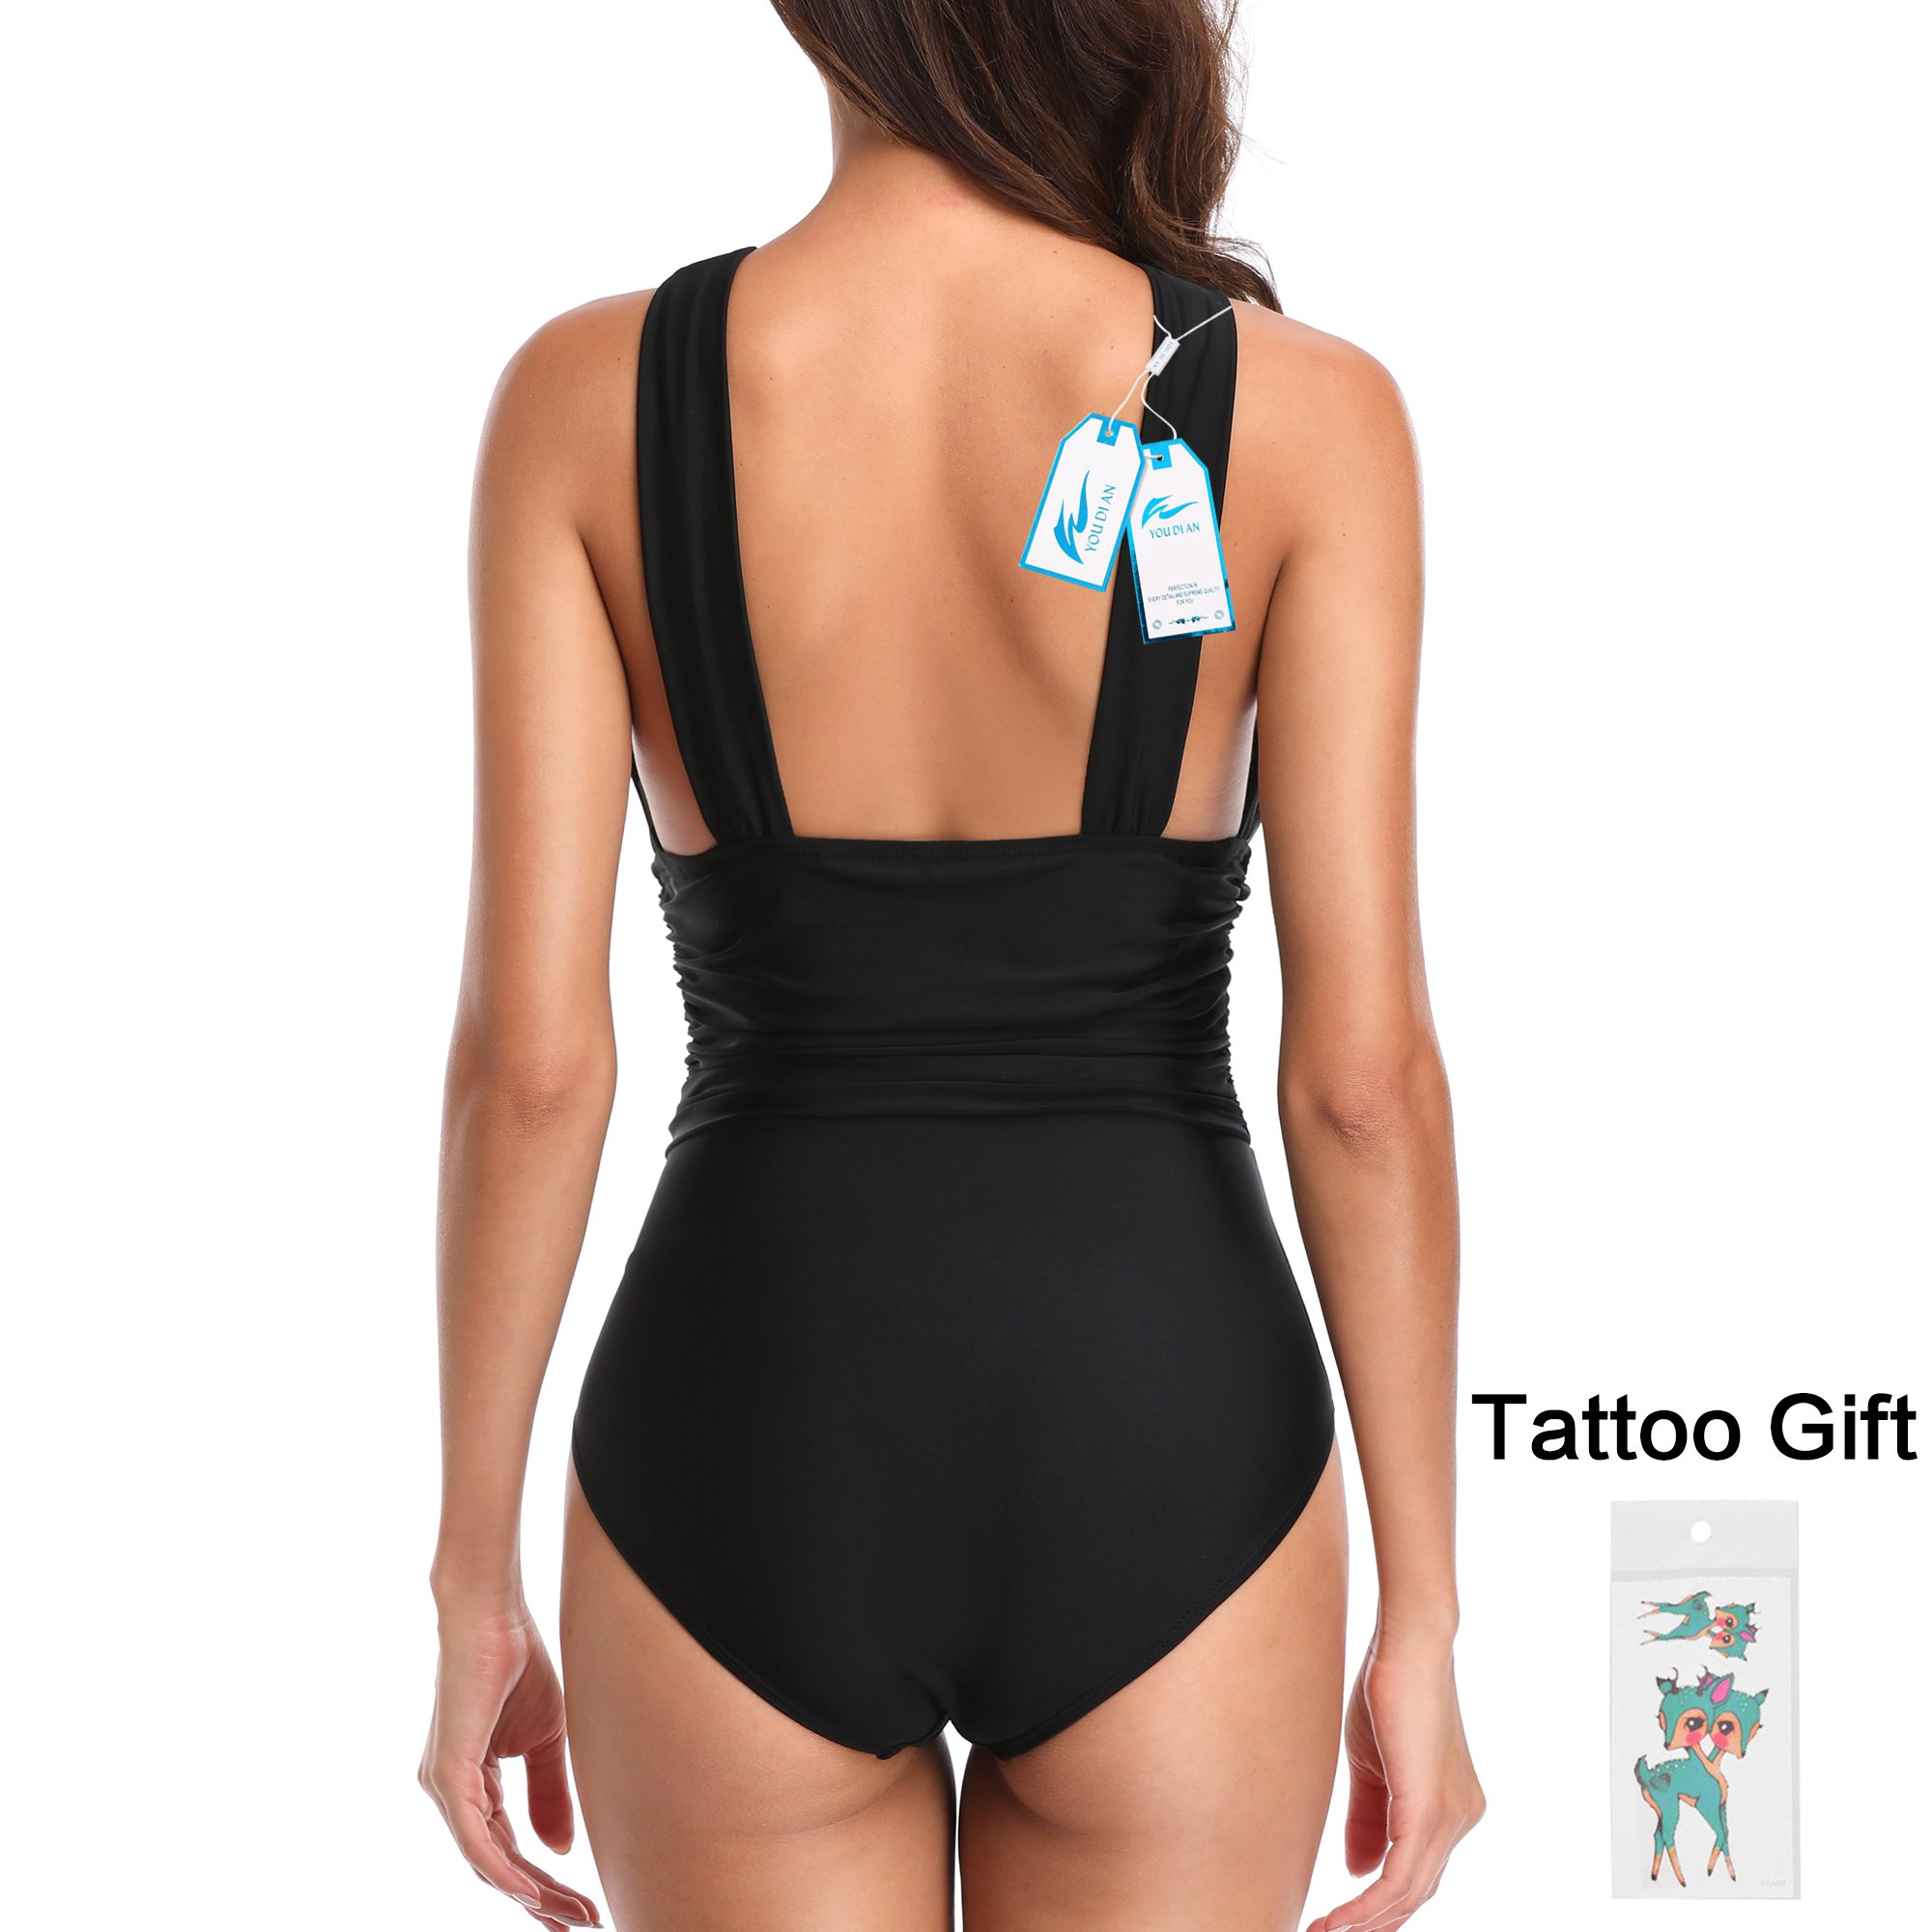 W YOU DI AN Women's One Piece Cross Ruffled Backless Full Coverage Swimsuit Bathing Suit Beachwear(Black, L) by W YOU DI AN (Image #5)